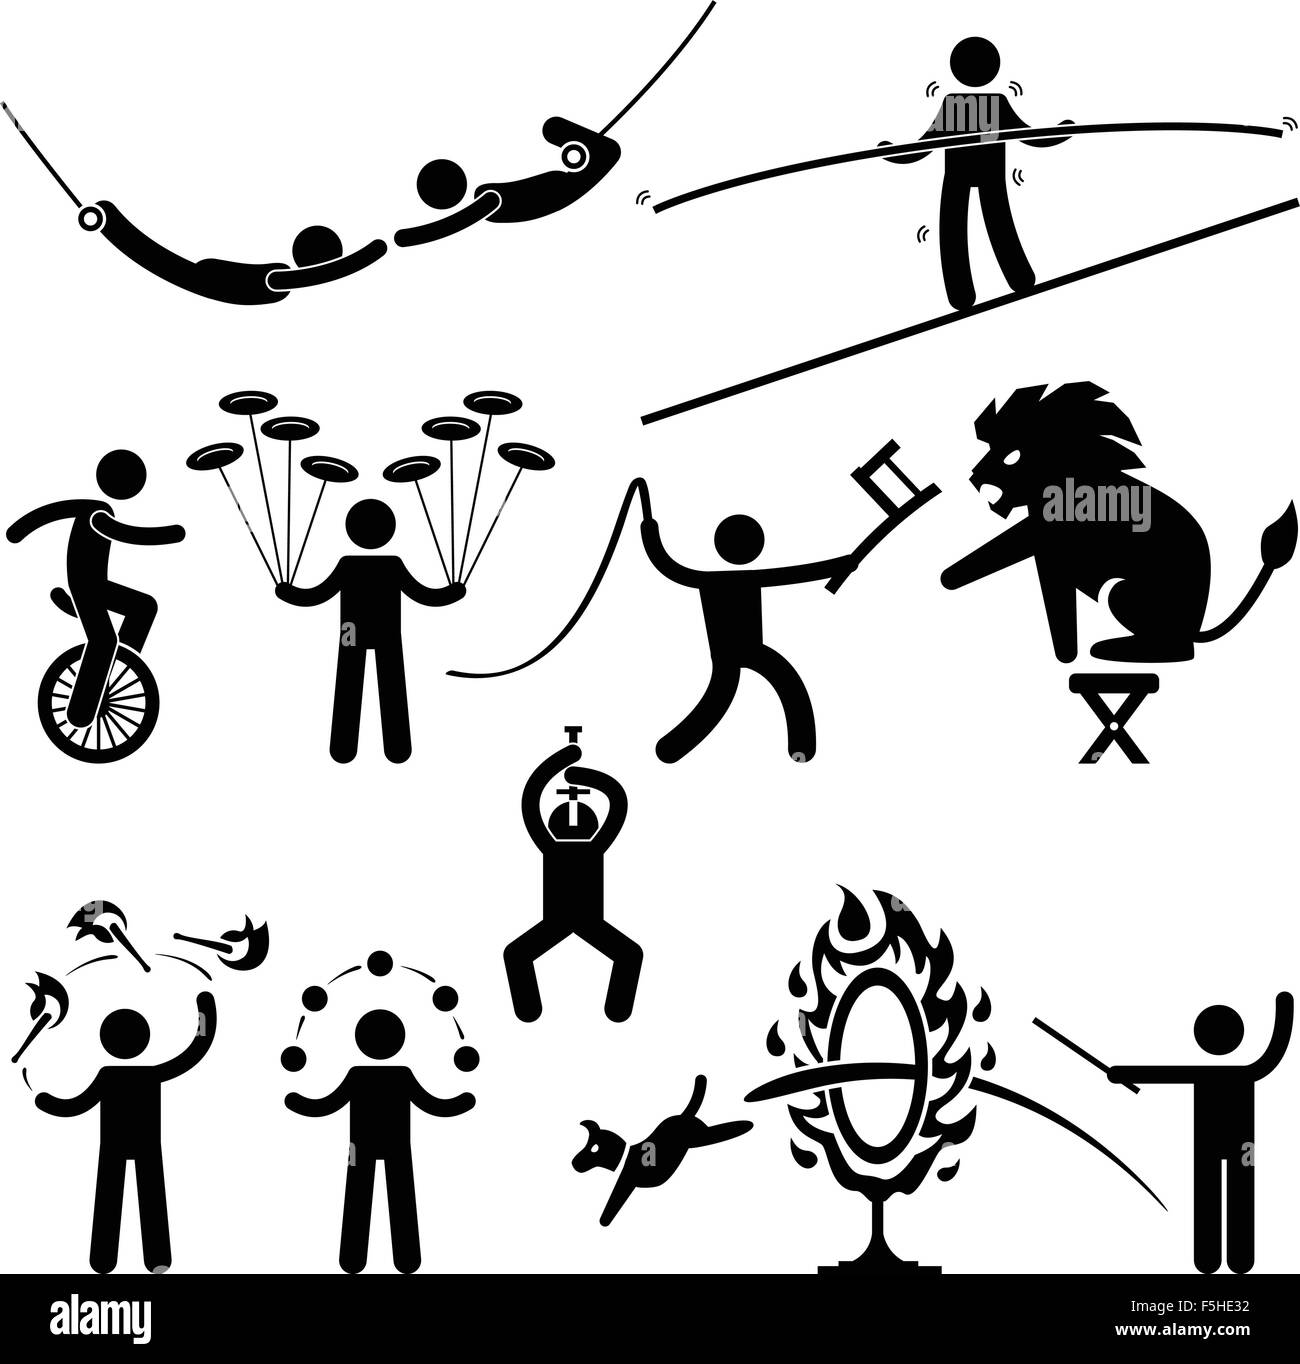 Circus Performers Acrobat Stunt Animal Man Stick Figure Pictogram Icon - Stock Image